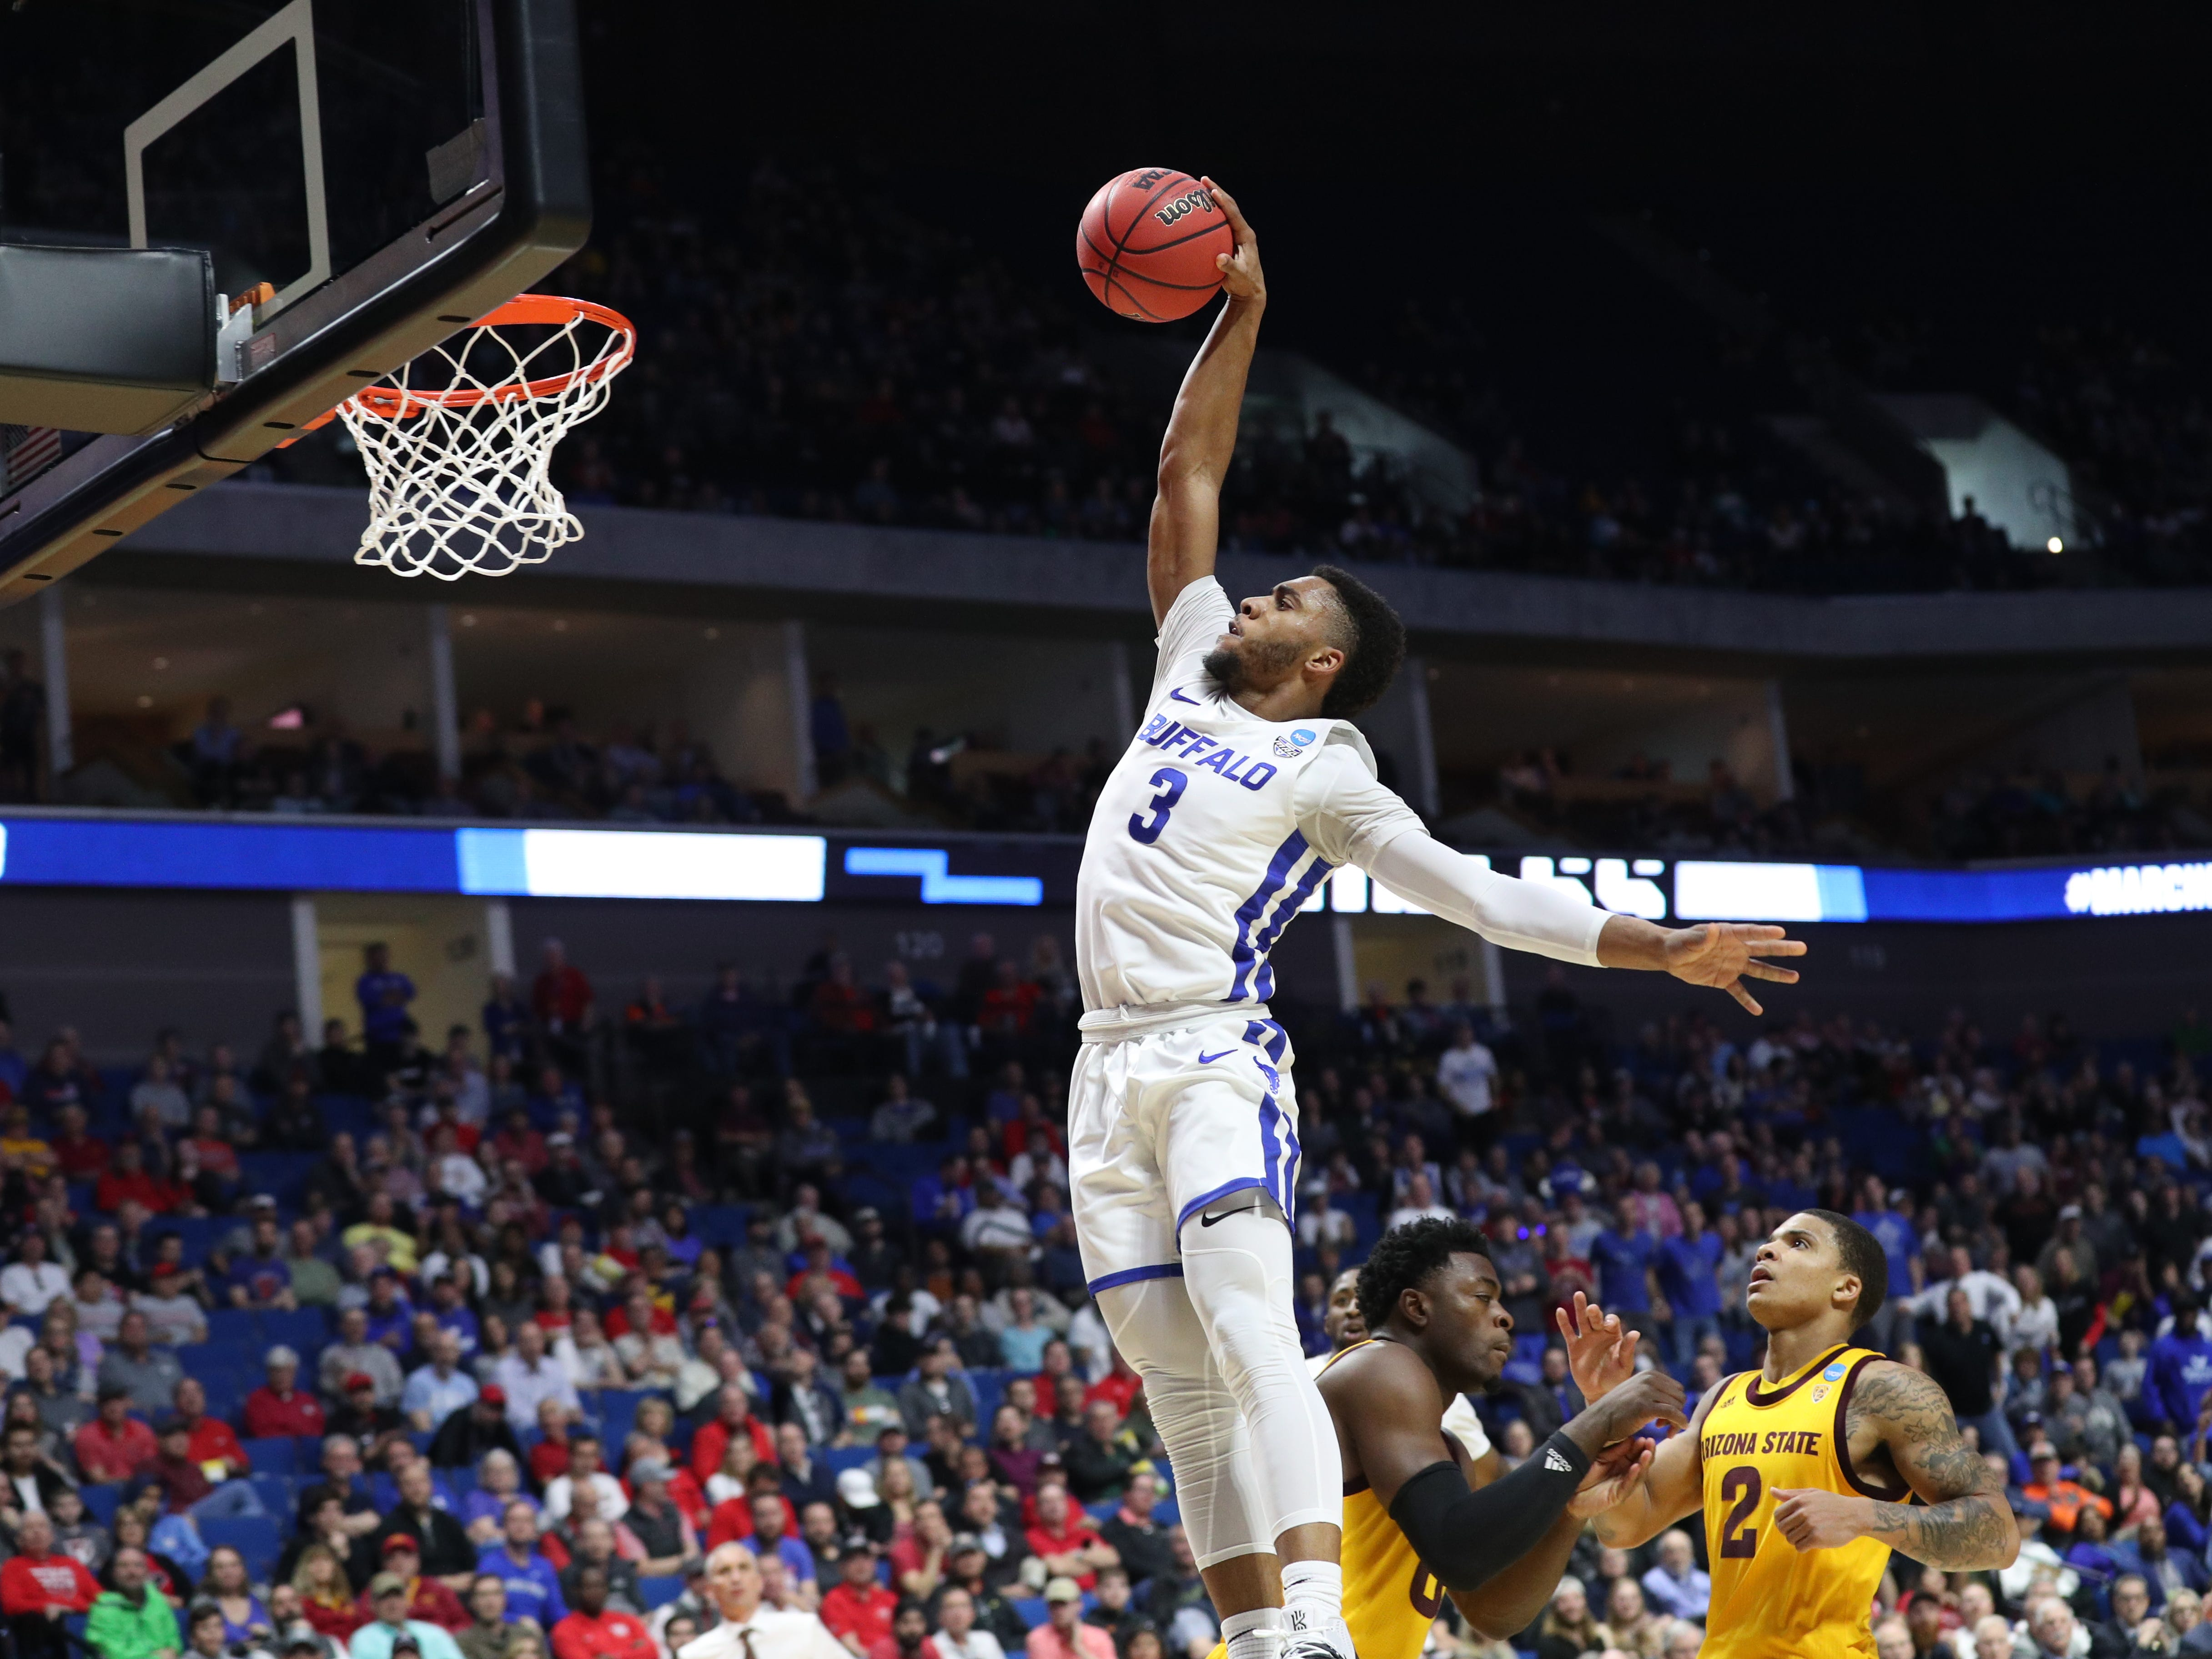 First round: Buffalo Bulls guard Jayvon Graves goes up for a dunk during his team's win over the Arizona State Sun Devils.